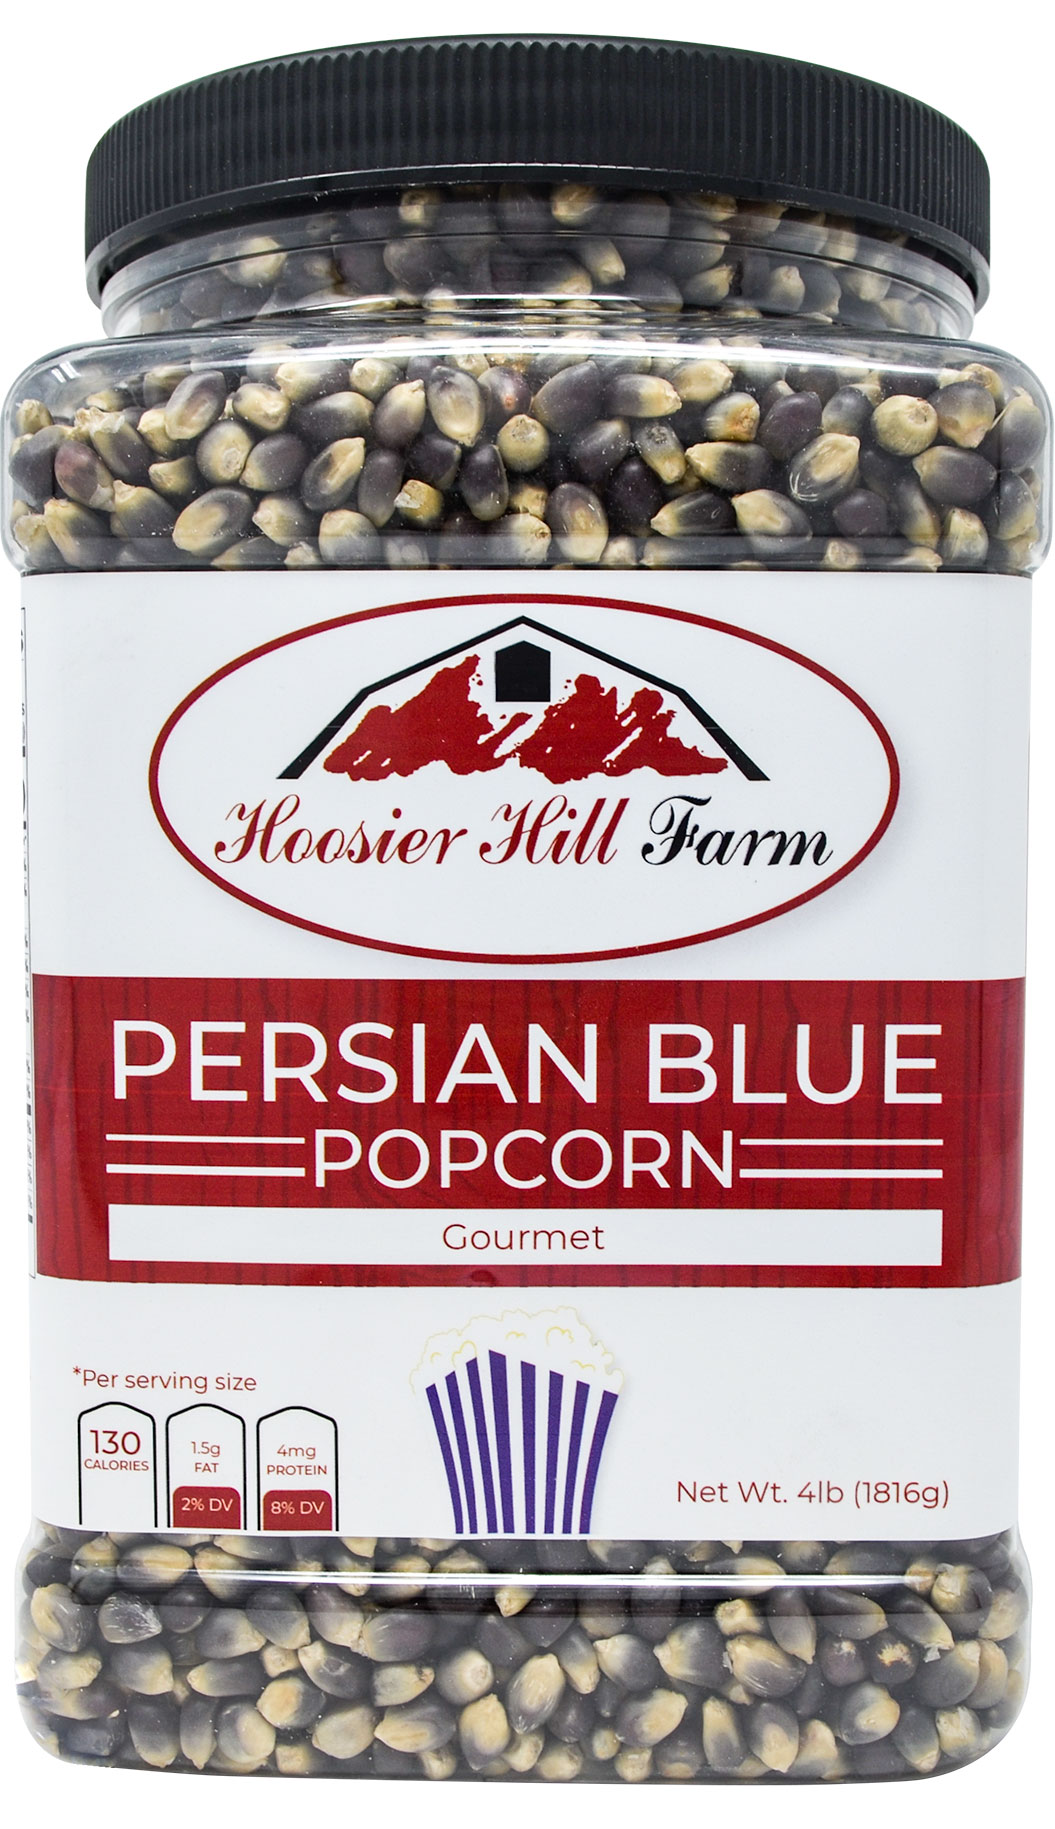 Hoosier Hill Farm Gourmet Persian Blue, Popcorn Lovers 4 lb. Jar.